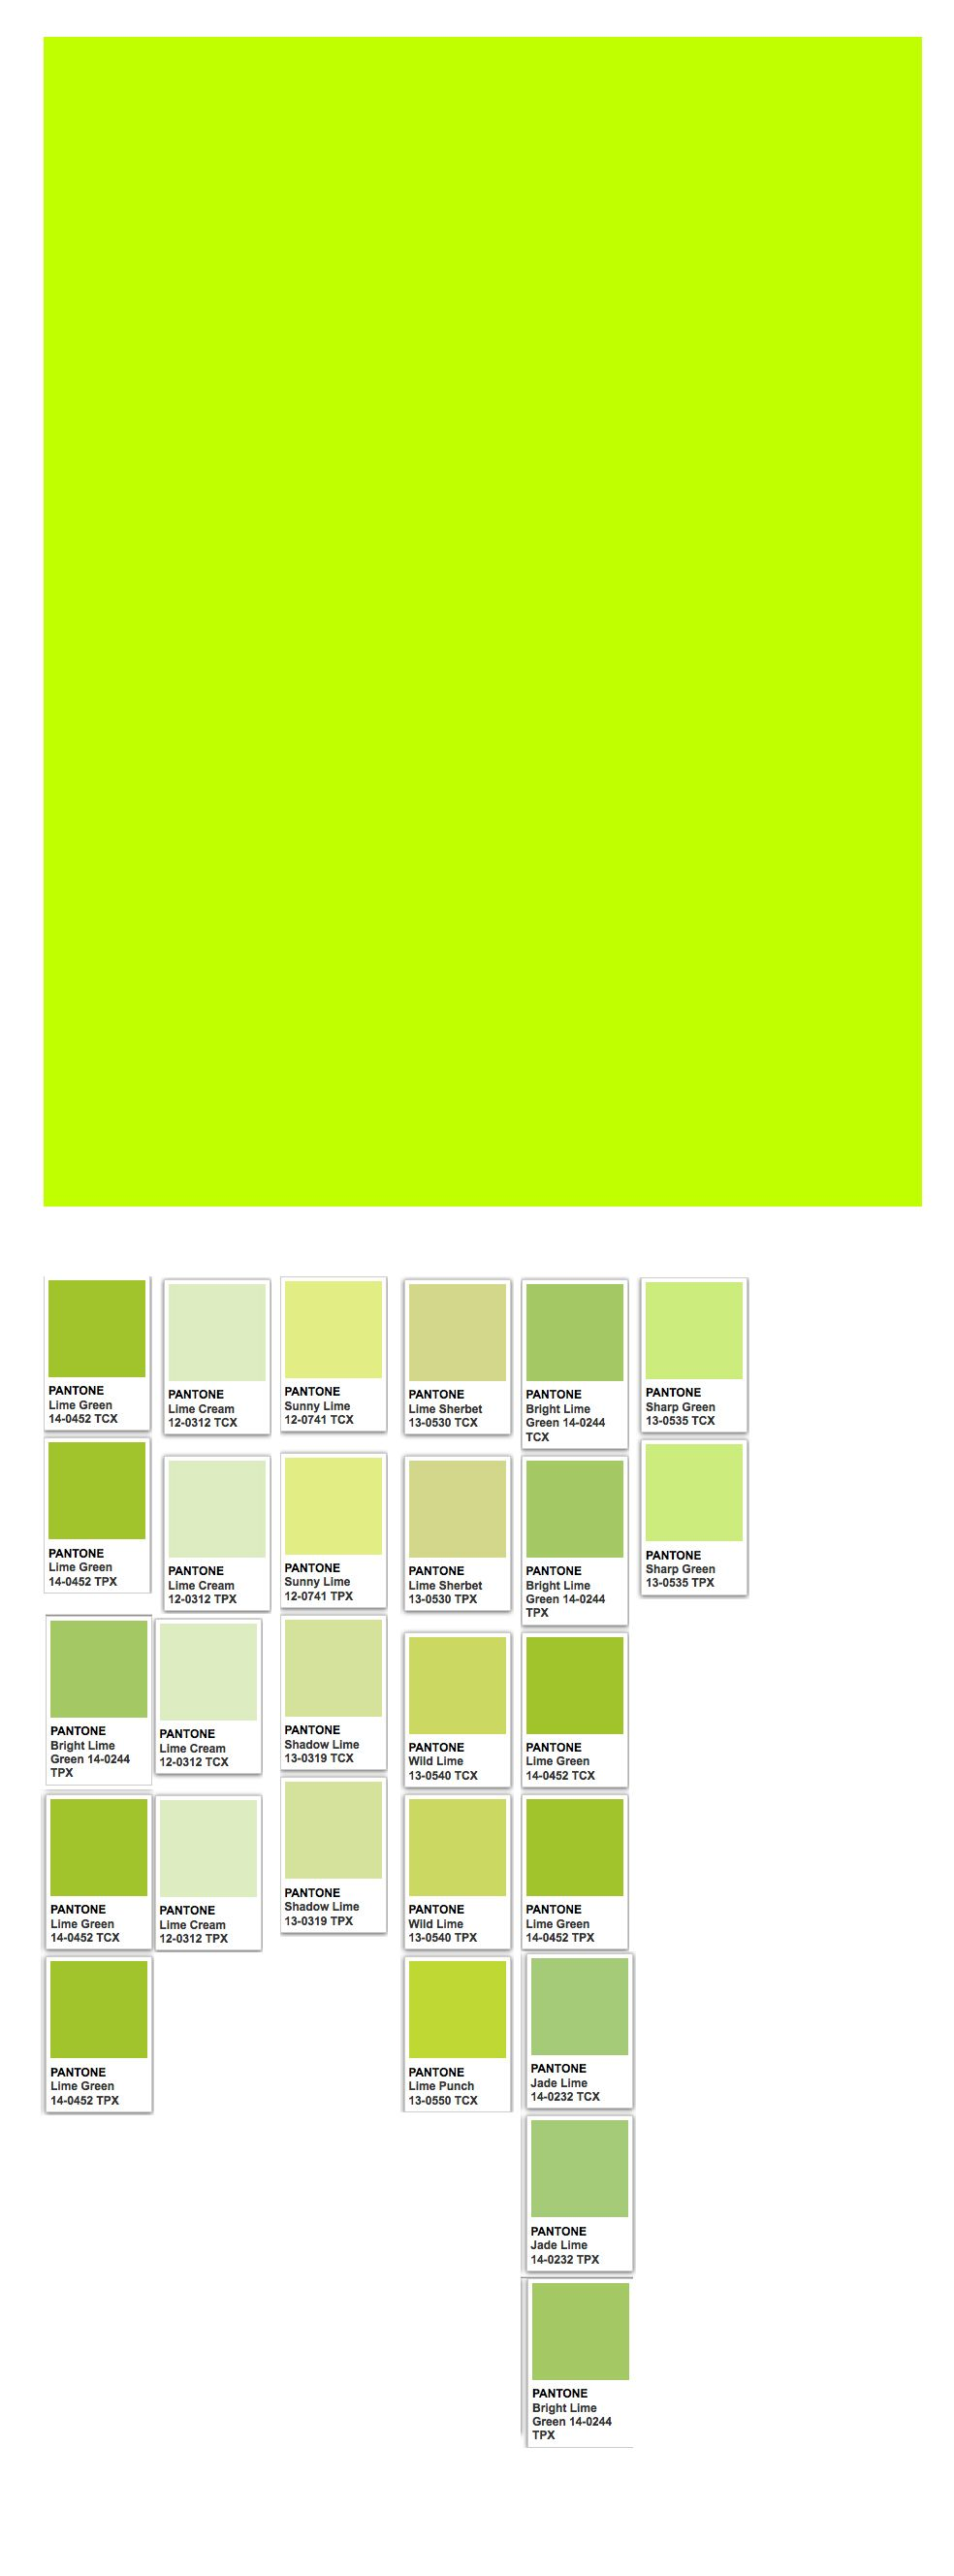 Pantone Grün Lime (web) And Related Pantone Colors | Farbpalette, Palette, Neon